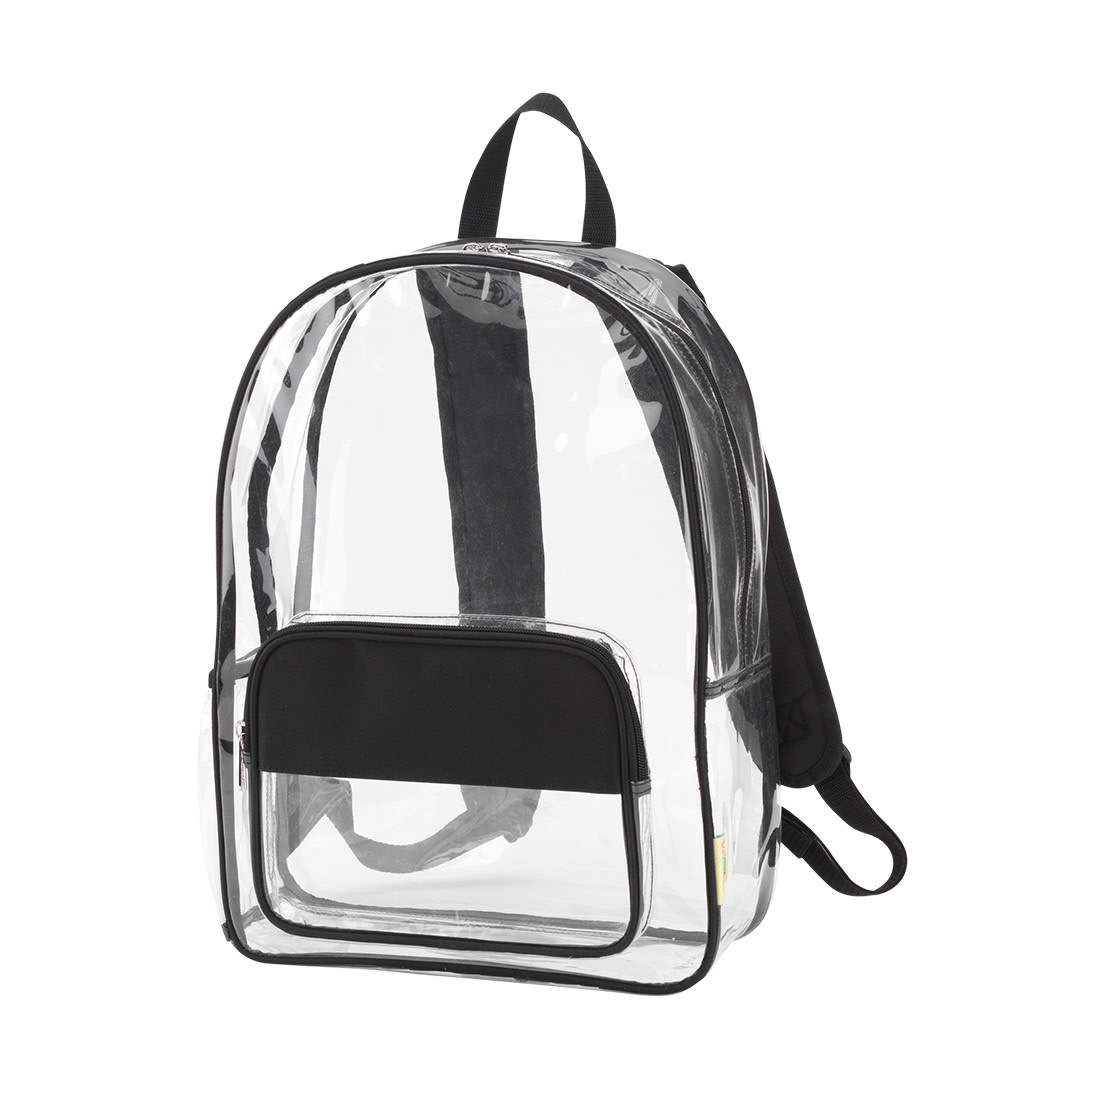 44fe3f828558 Clear Backpack - 4 Color Options - Monogram Personalization Included!